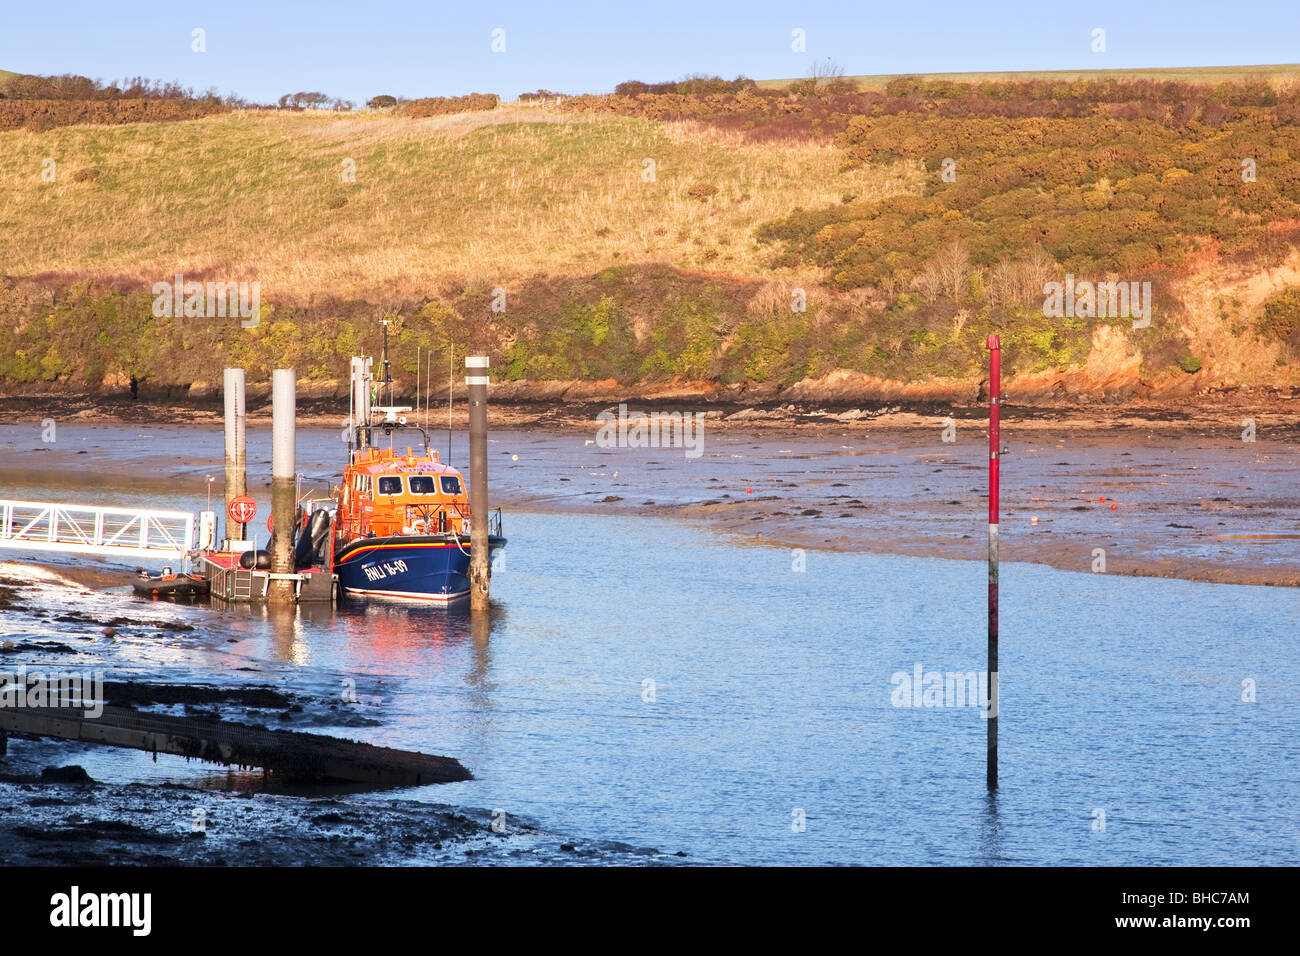 The RNLI Lifeboat Baltic Exchange III moored up in Salcombe Harbour, South Devon, England. - Stock Image